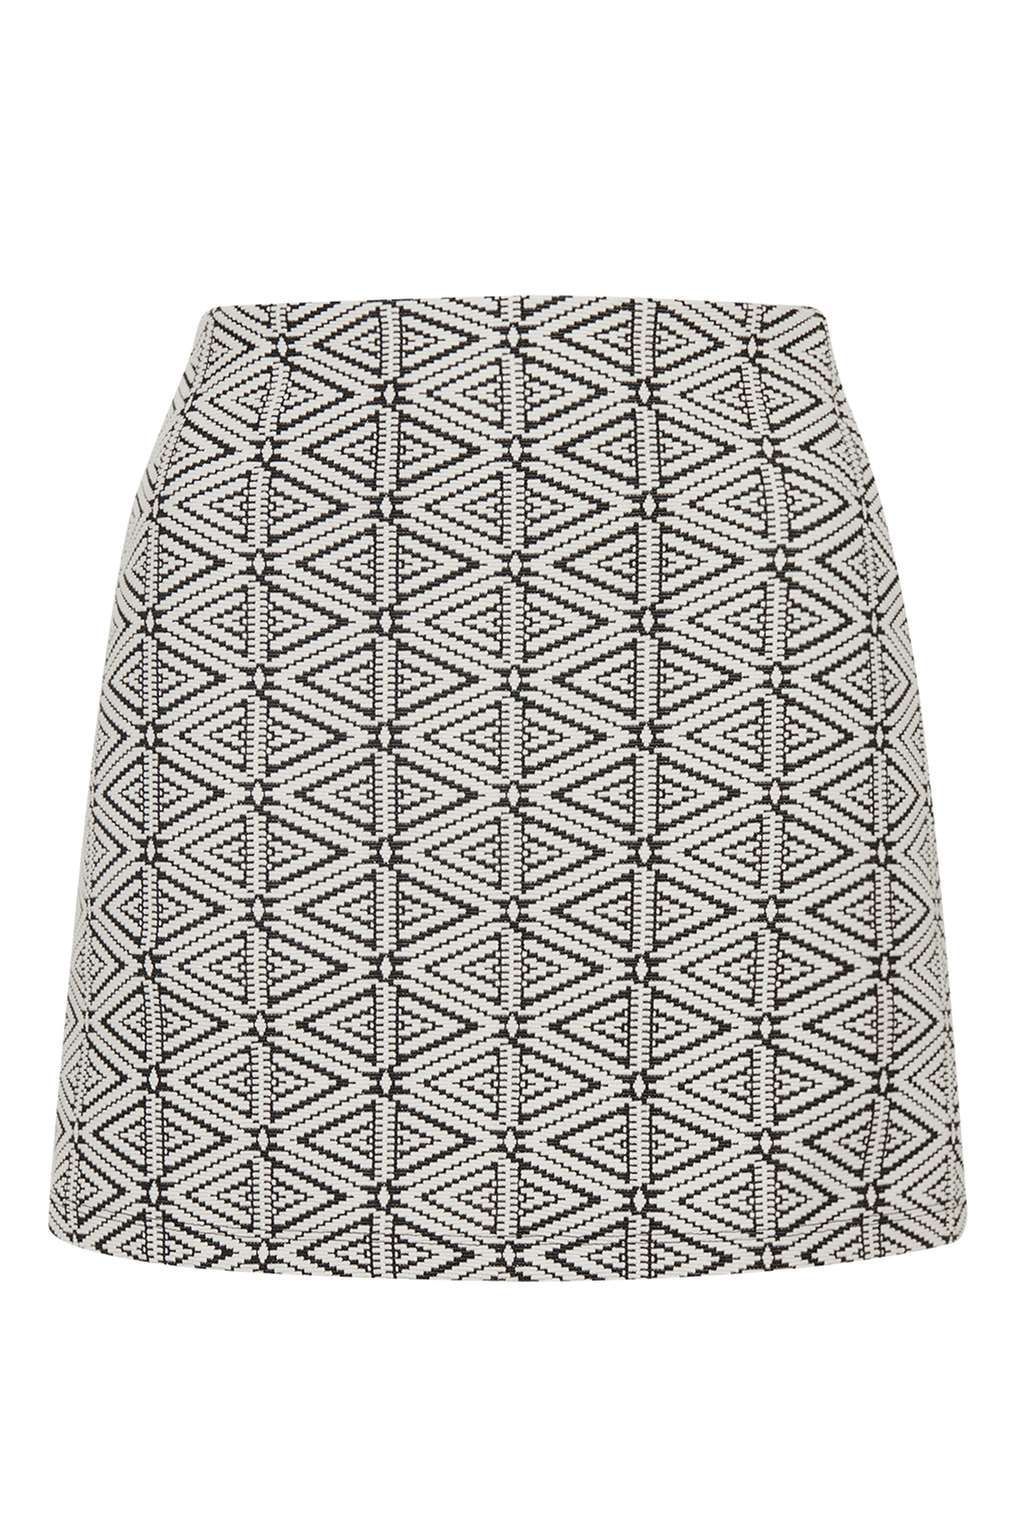 Topshop Womens Triangle Jacquard A-Line Skirt - 100% Guaranteed For Sale Latest Collections Latest Collections Cheap Price hZA4y